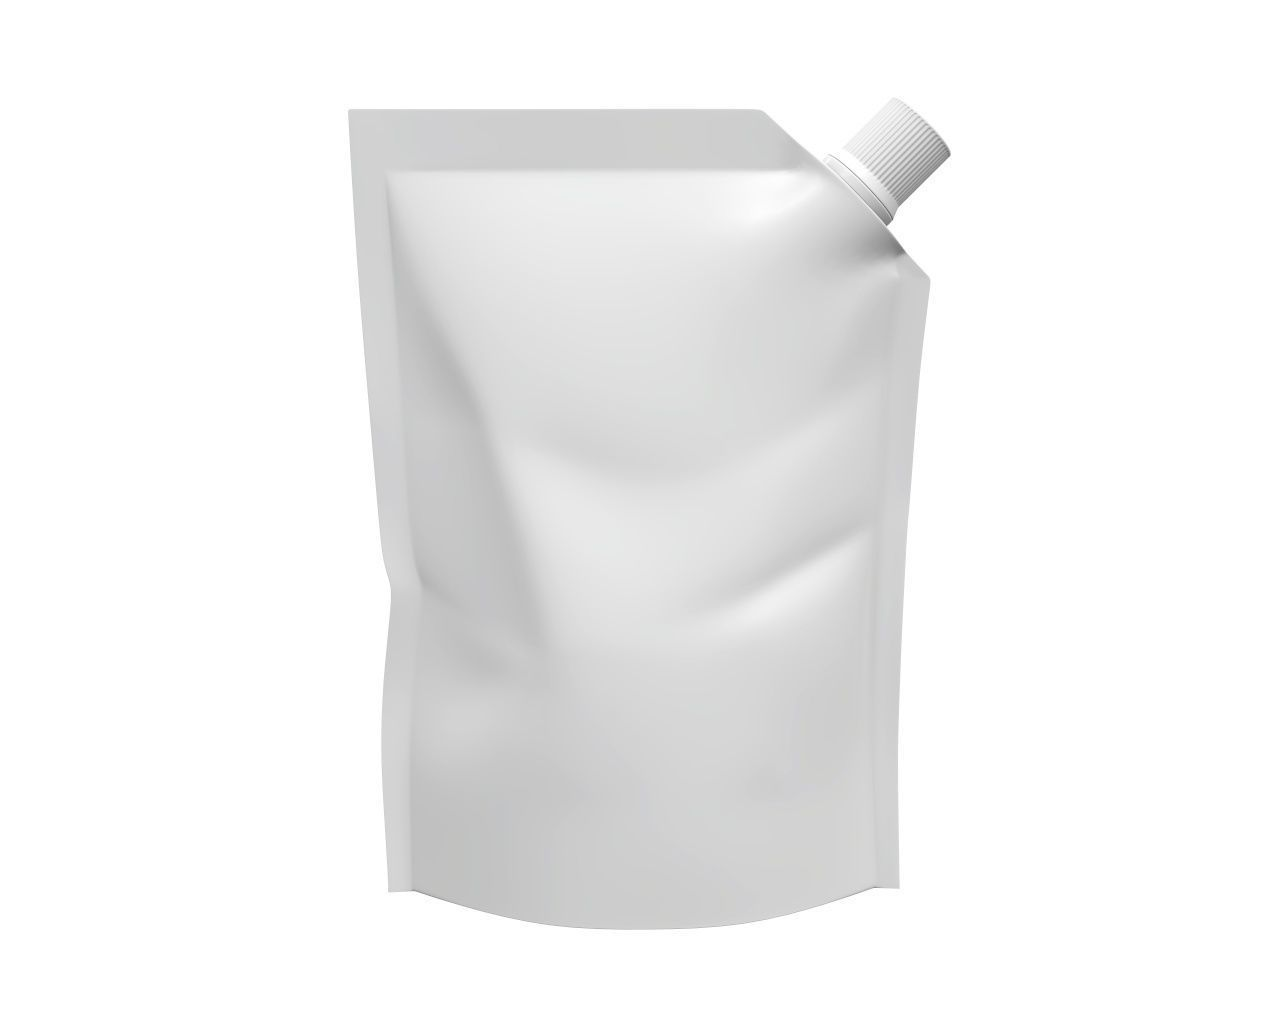 Blank Pouch Bag With Corner Spout Lid Mock Up 01